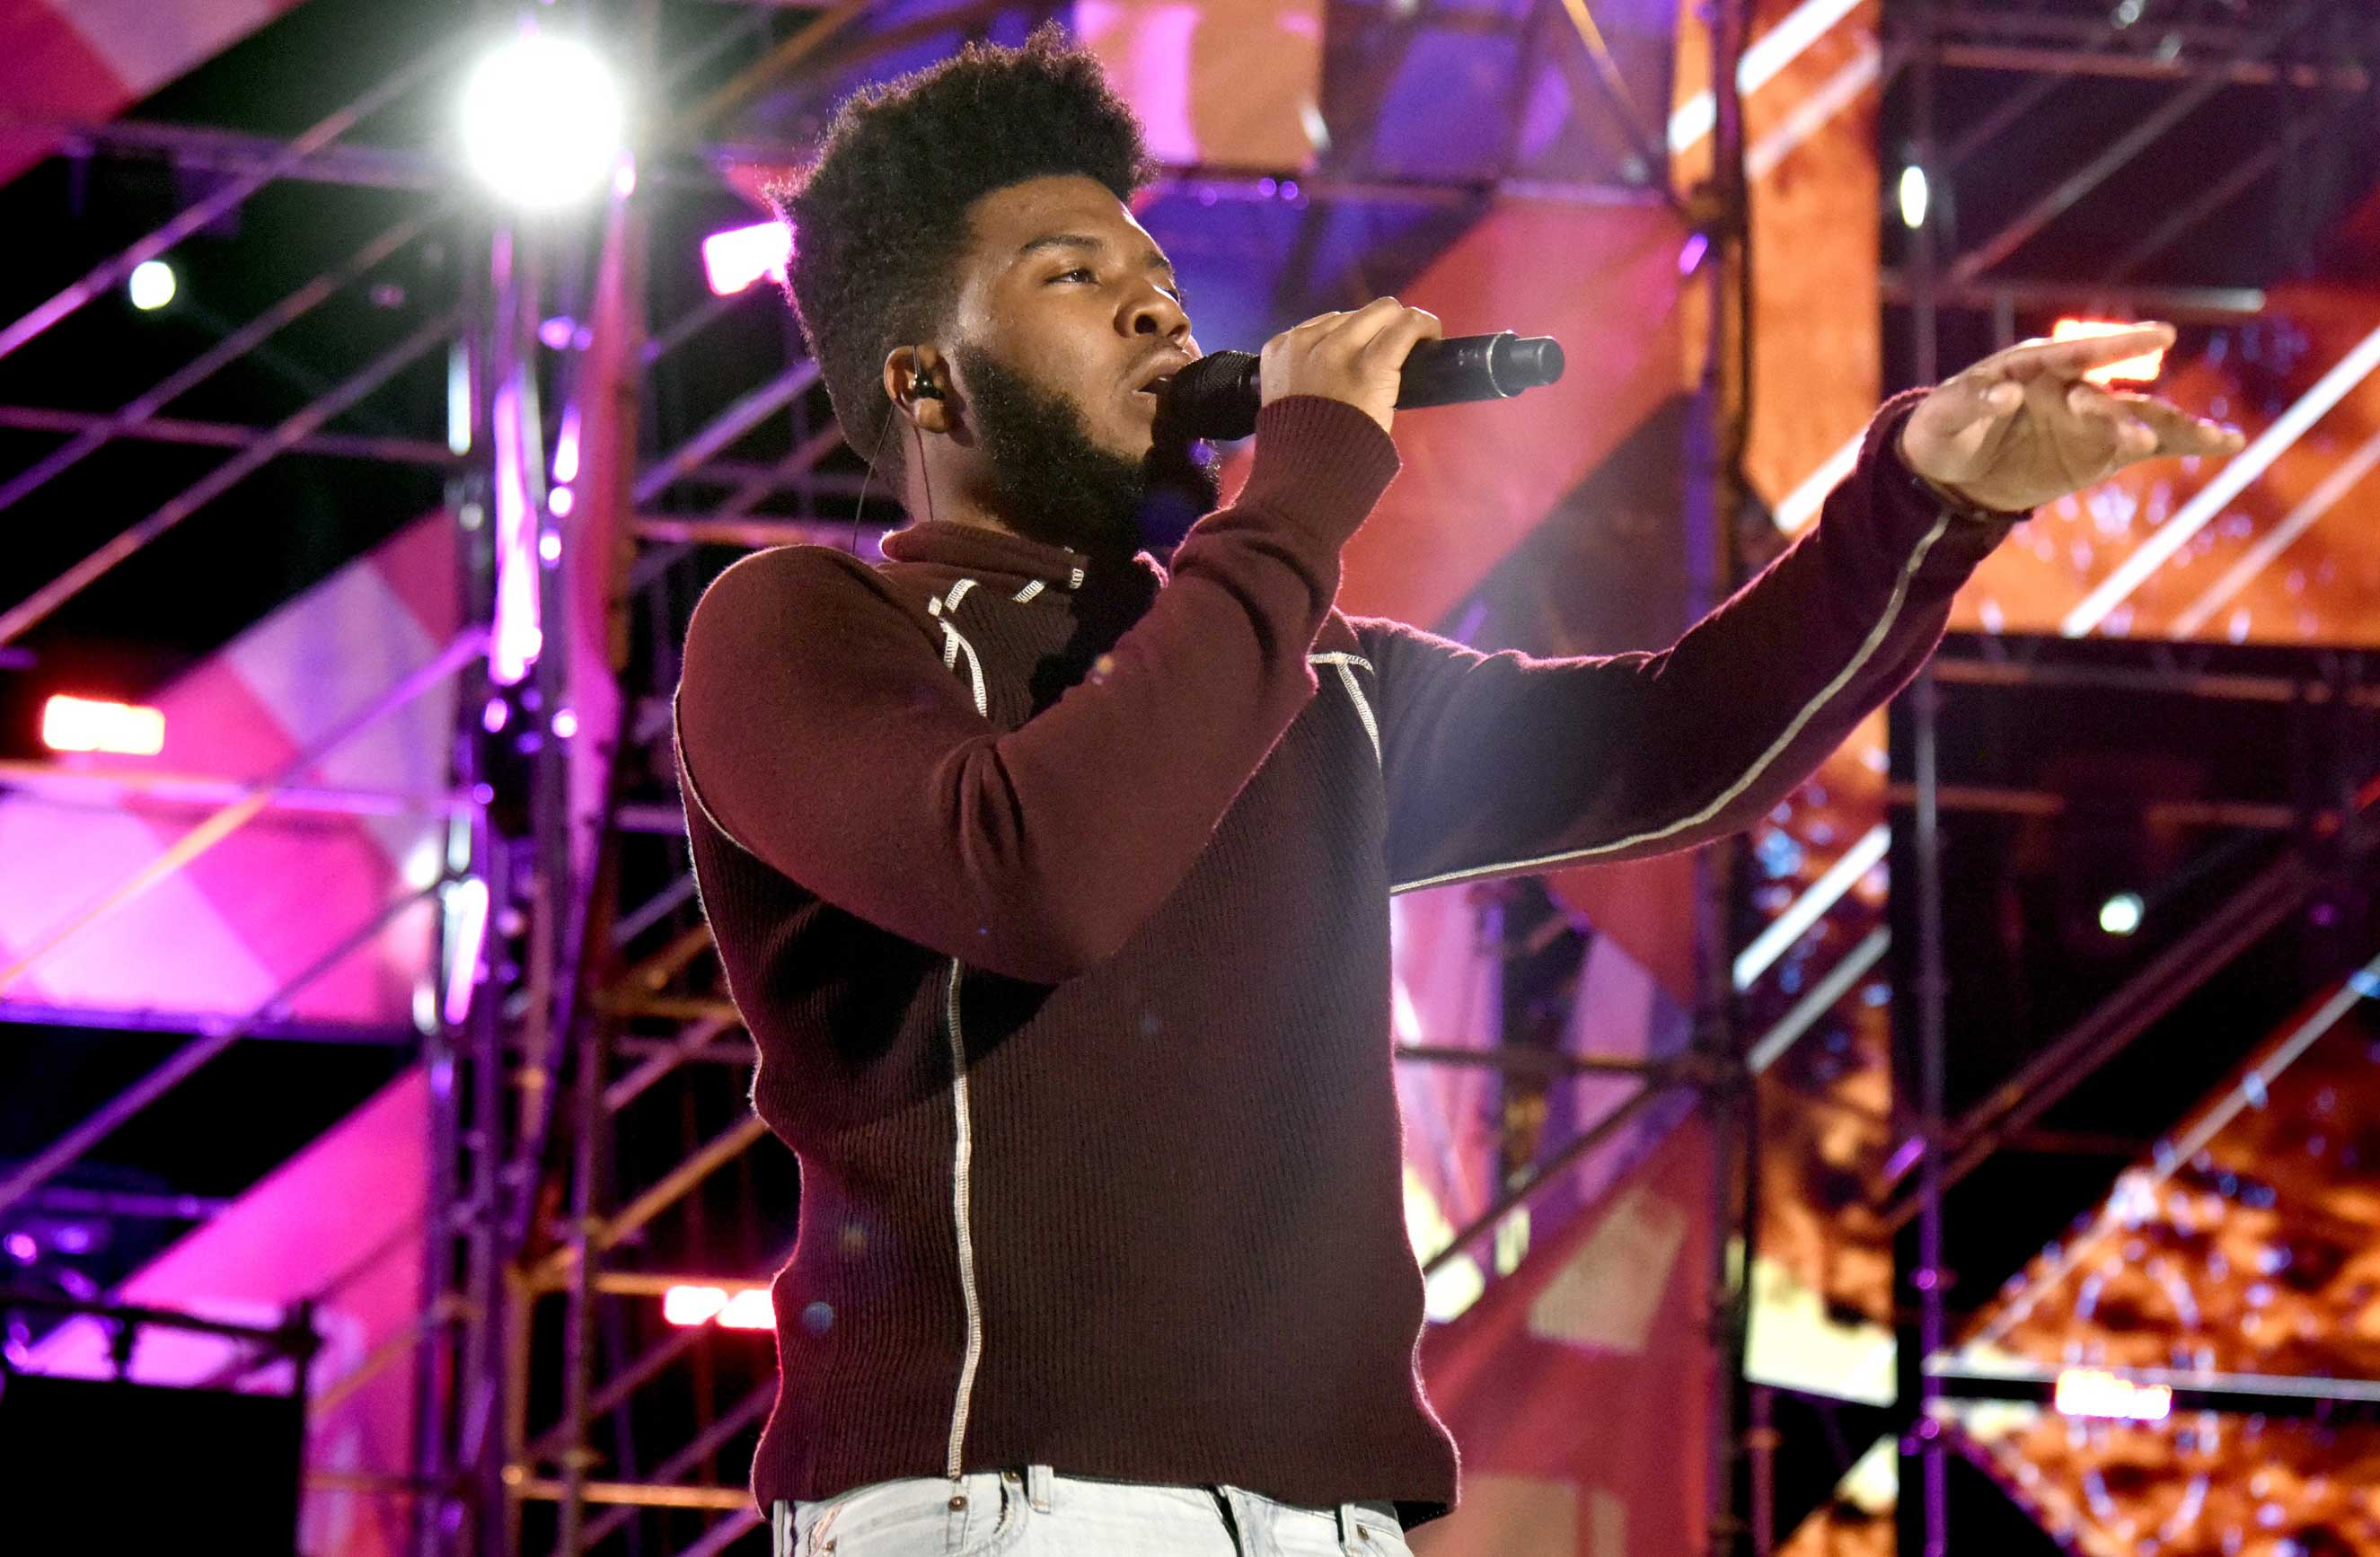 Khalid performs onstage at MTV Woodies LIVE on March 16, 2017 in Austin, Texas.